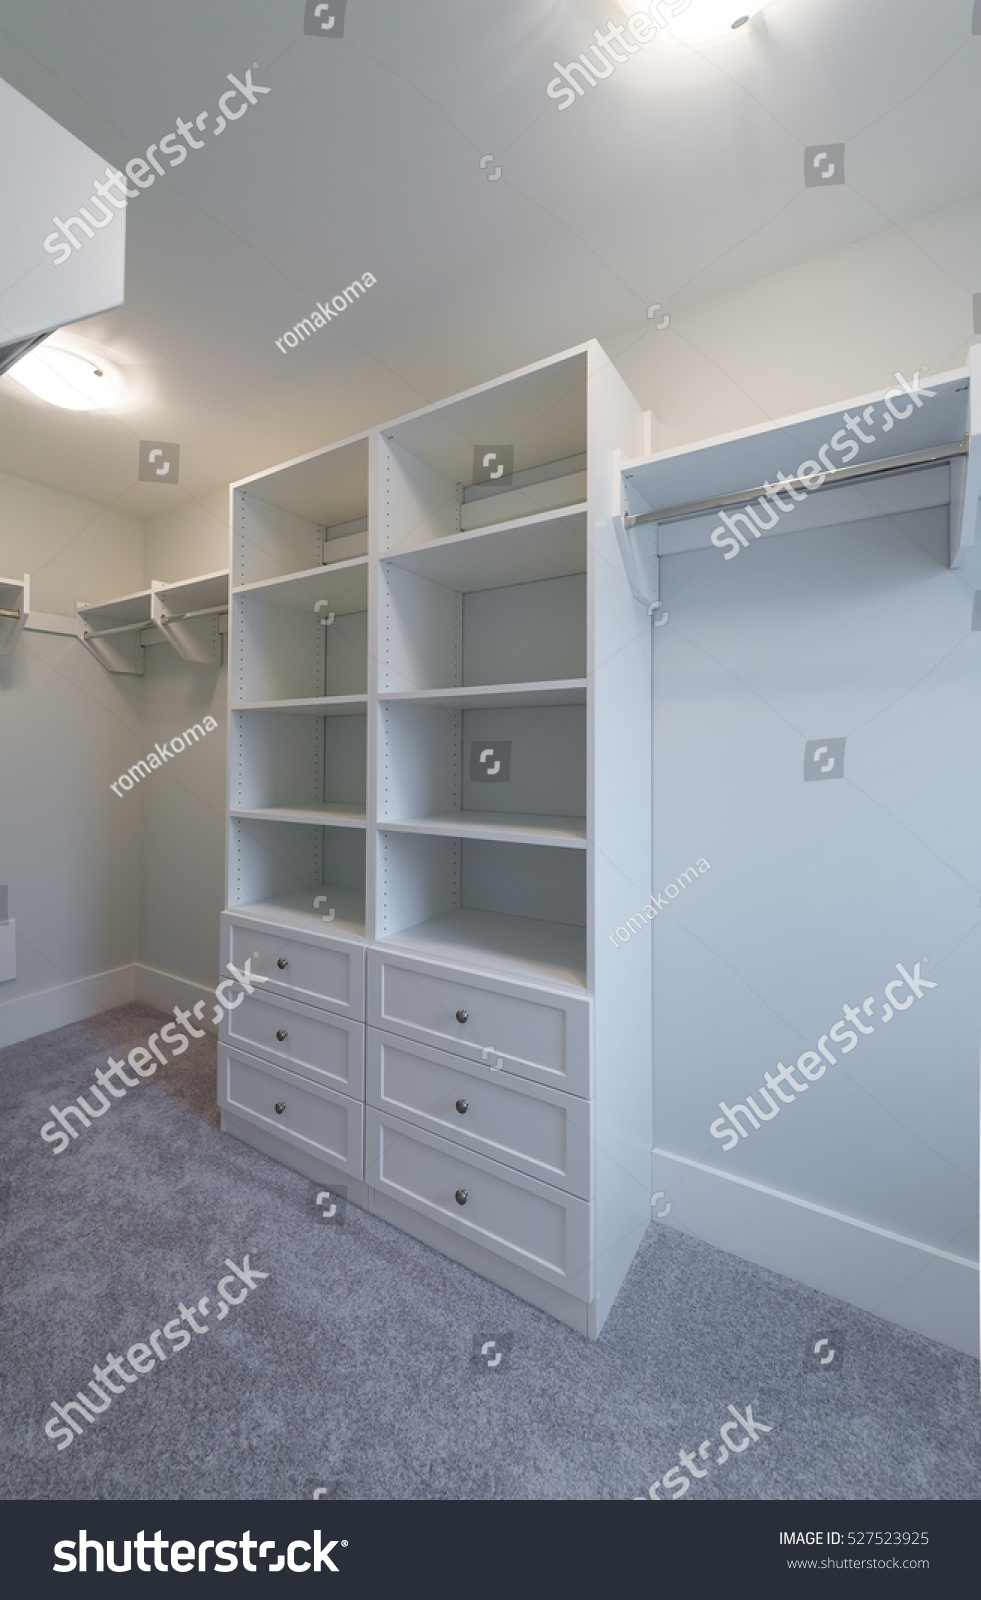 Exceptionnel Room With The Open Empty Closet, Working Closet, Cupboard With Some Racks,  Hangers